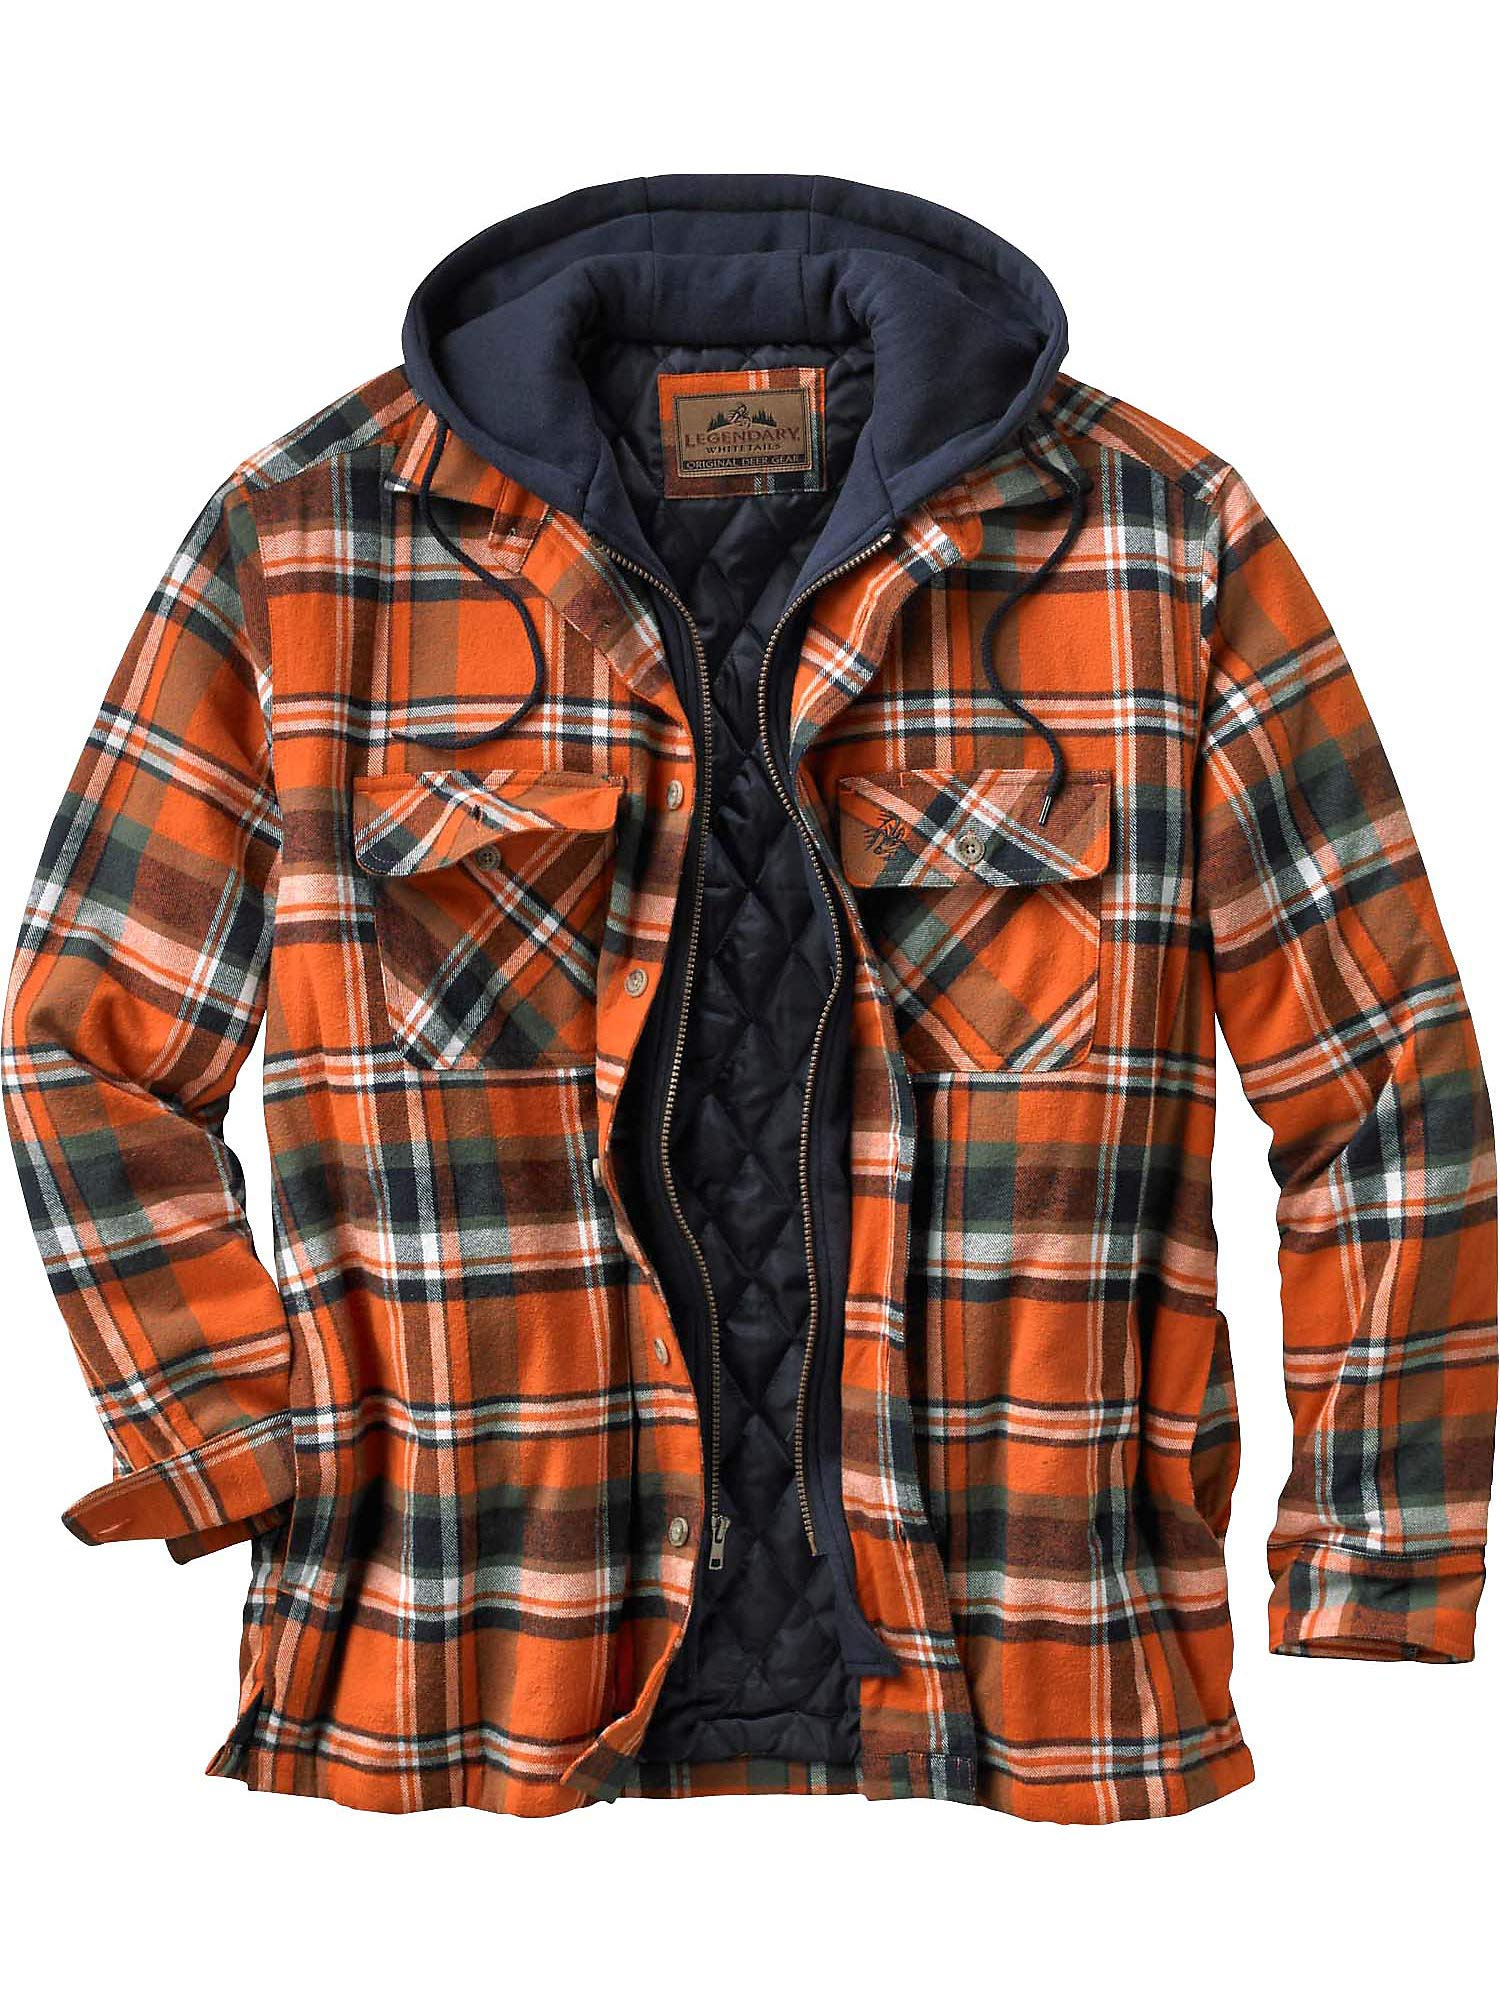 Legendary Whitetails Maplewood Hooded Shirt Jacket, Tomahawk Plaid, XXXX-Large by Legendary Whitetails